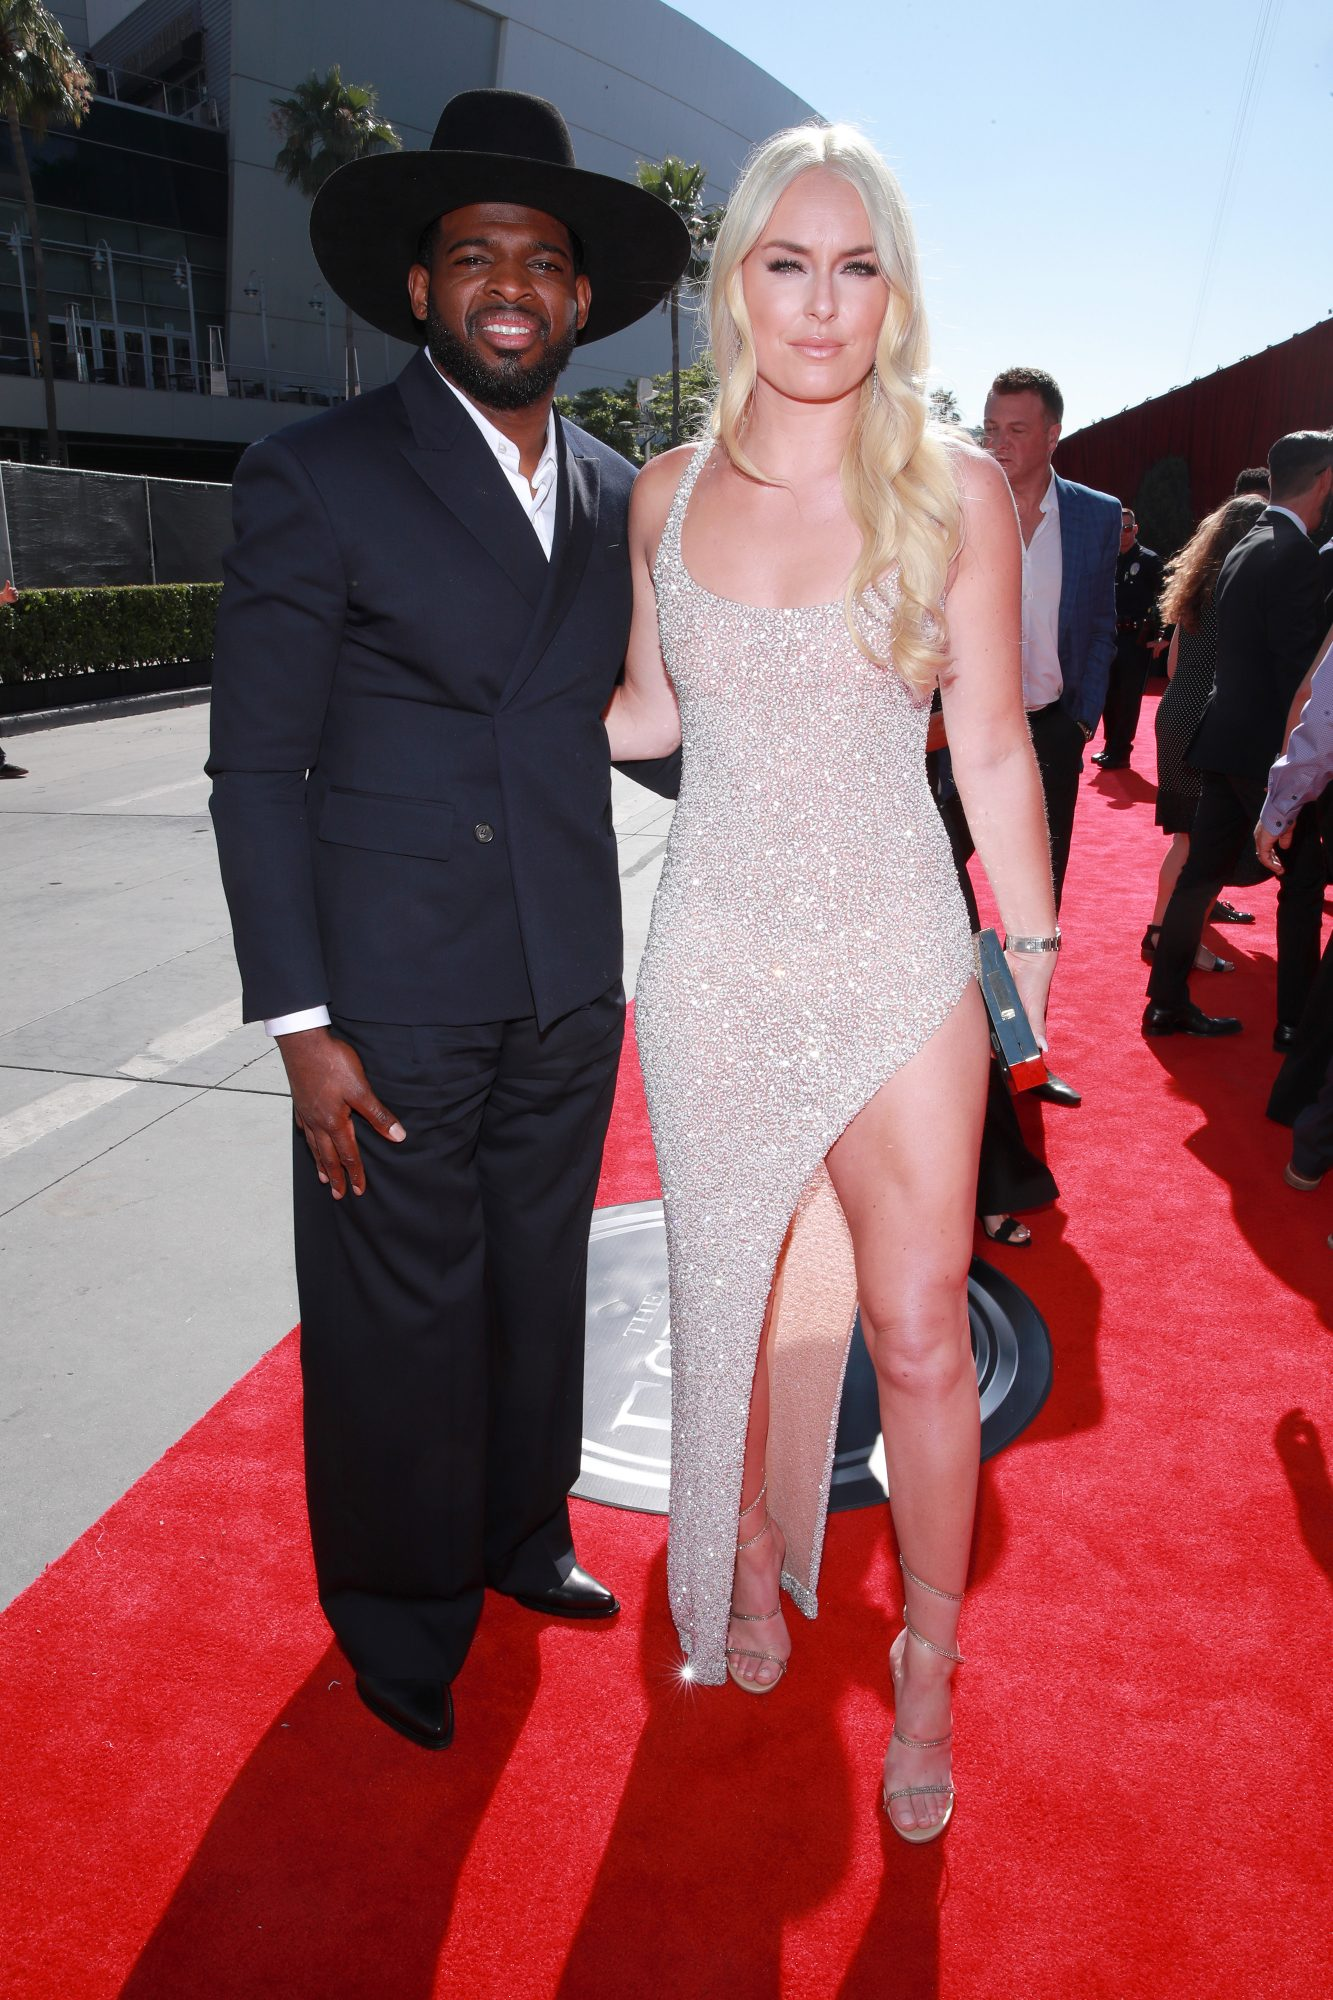 P.K. Subban and Lindsey Vonn